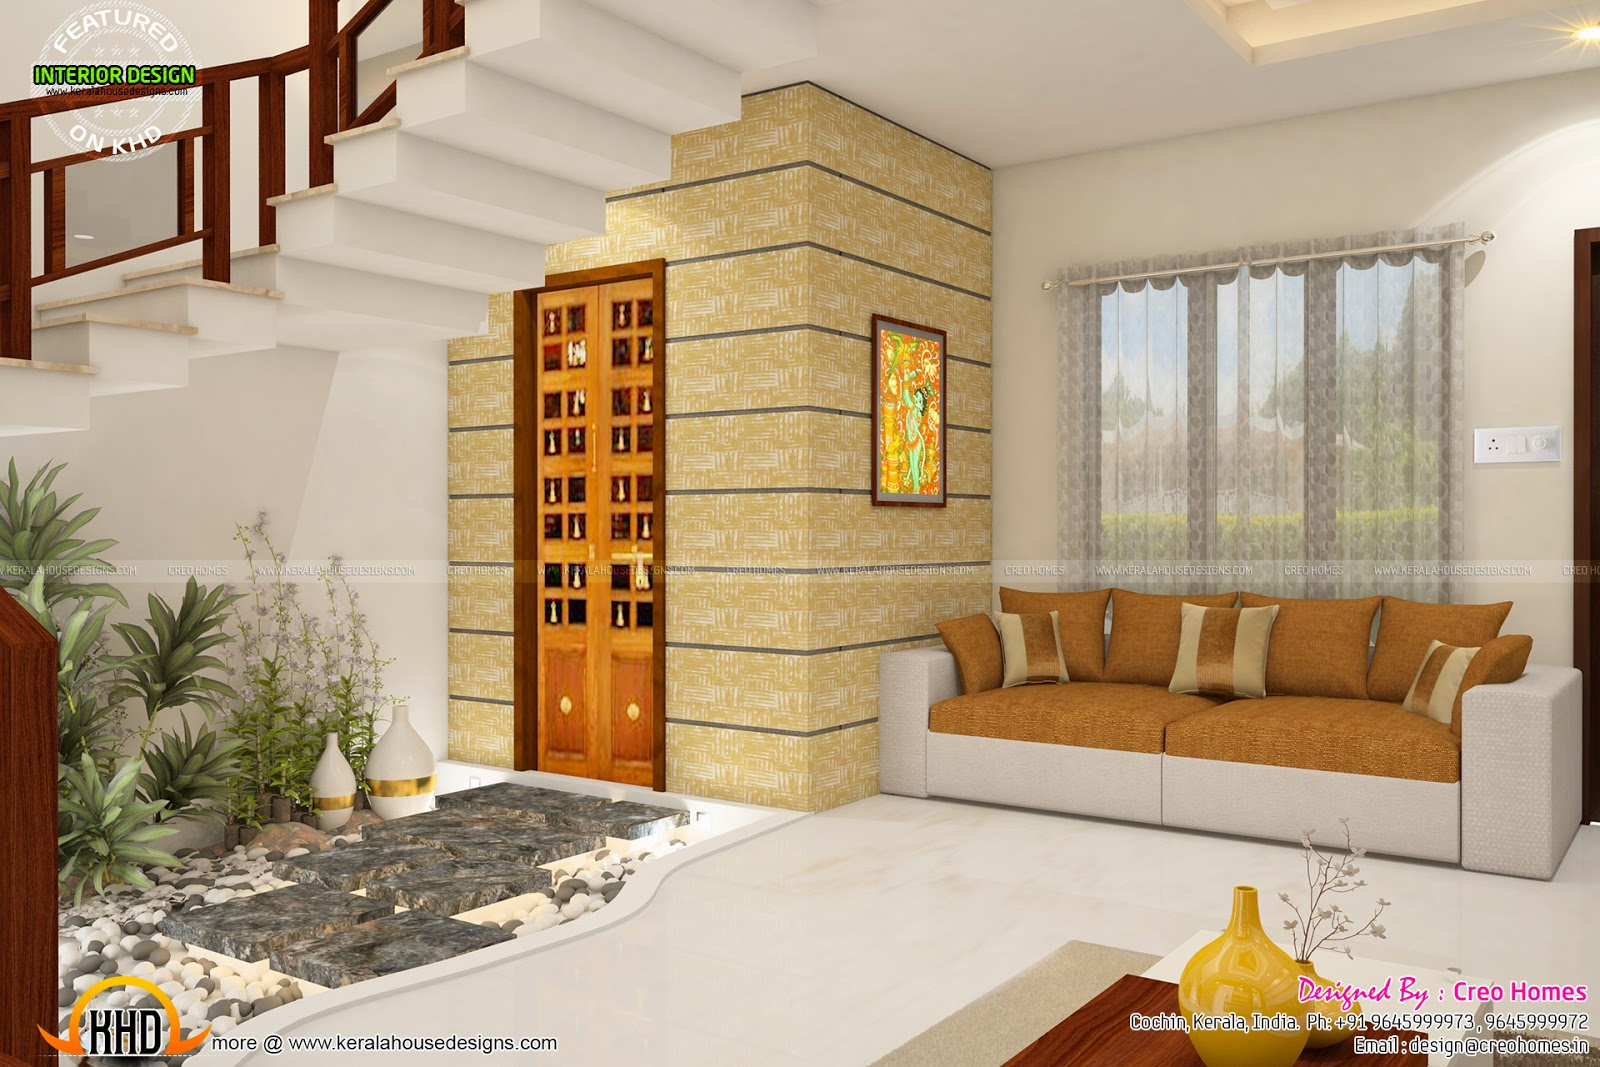 Total home interior solutions by creo homes kerala home for Home design interior design